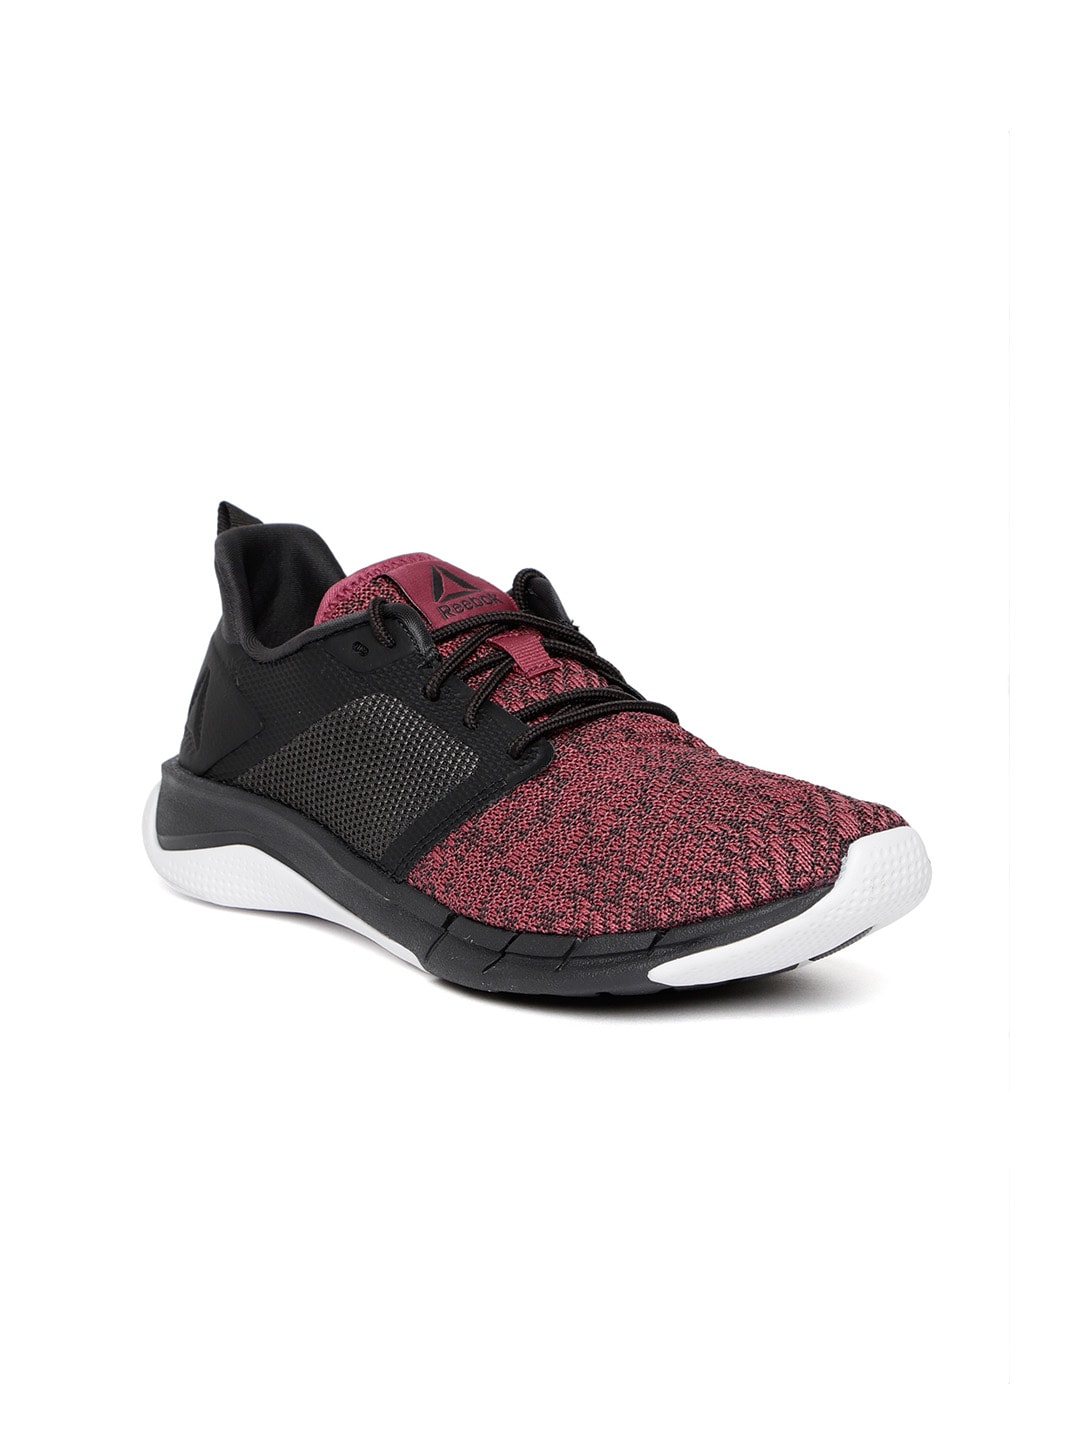 de45627c10392d Reebok Women Running Shoe - Buy Reebok Women Running Shoe online in India